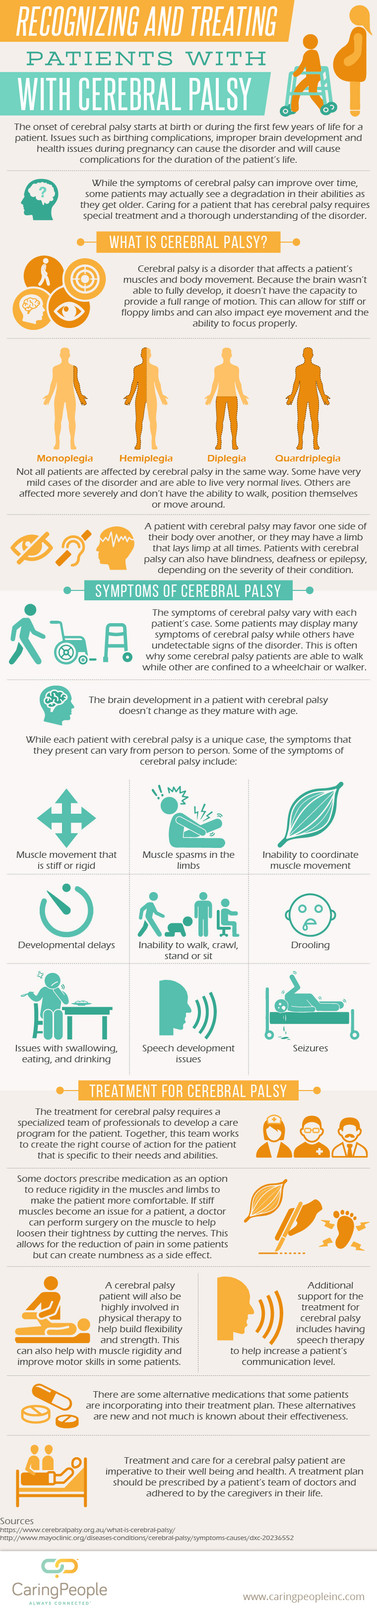 Recognizing and Treating Patients with Cerebral Palsy